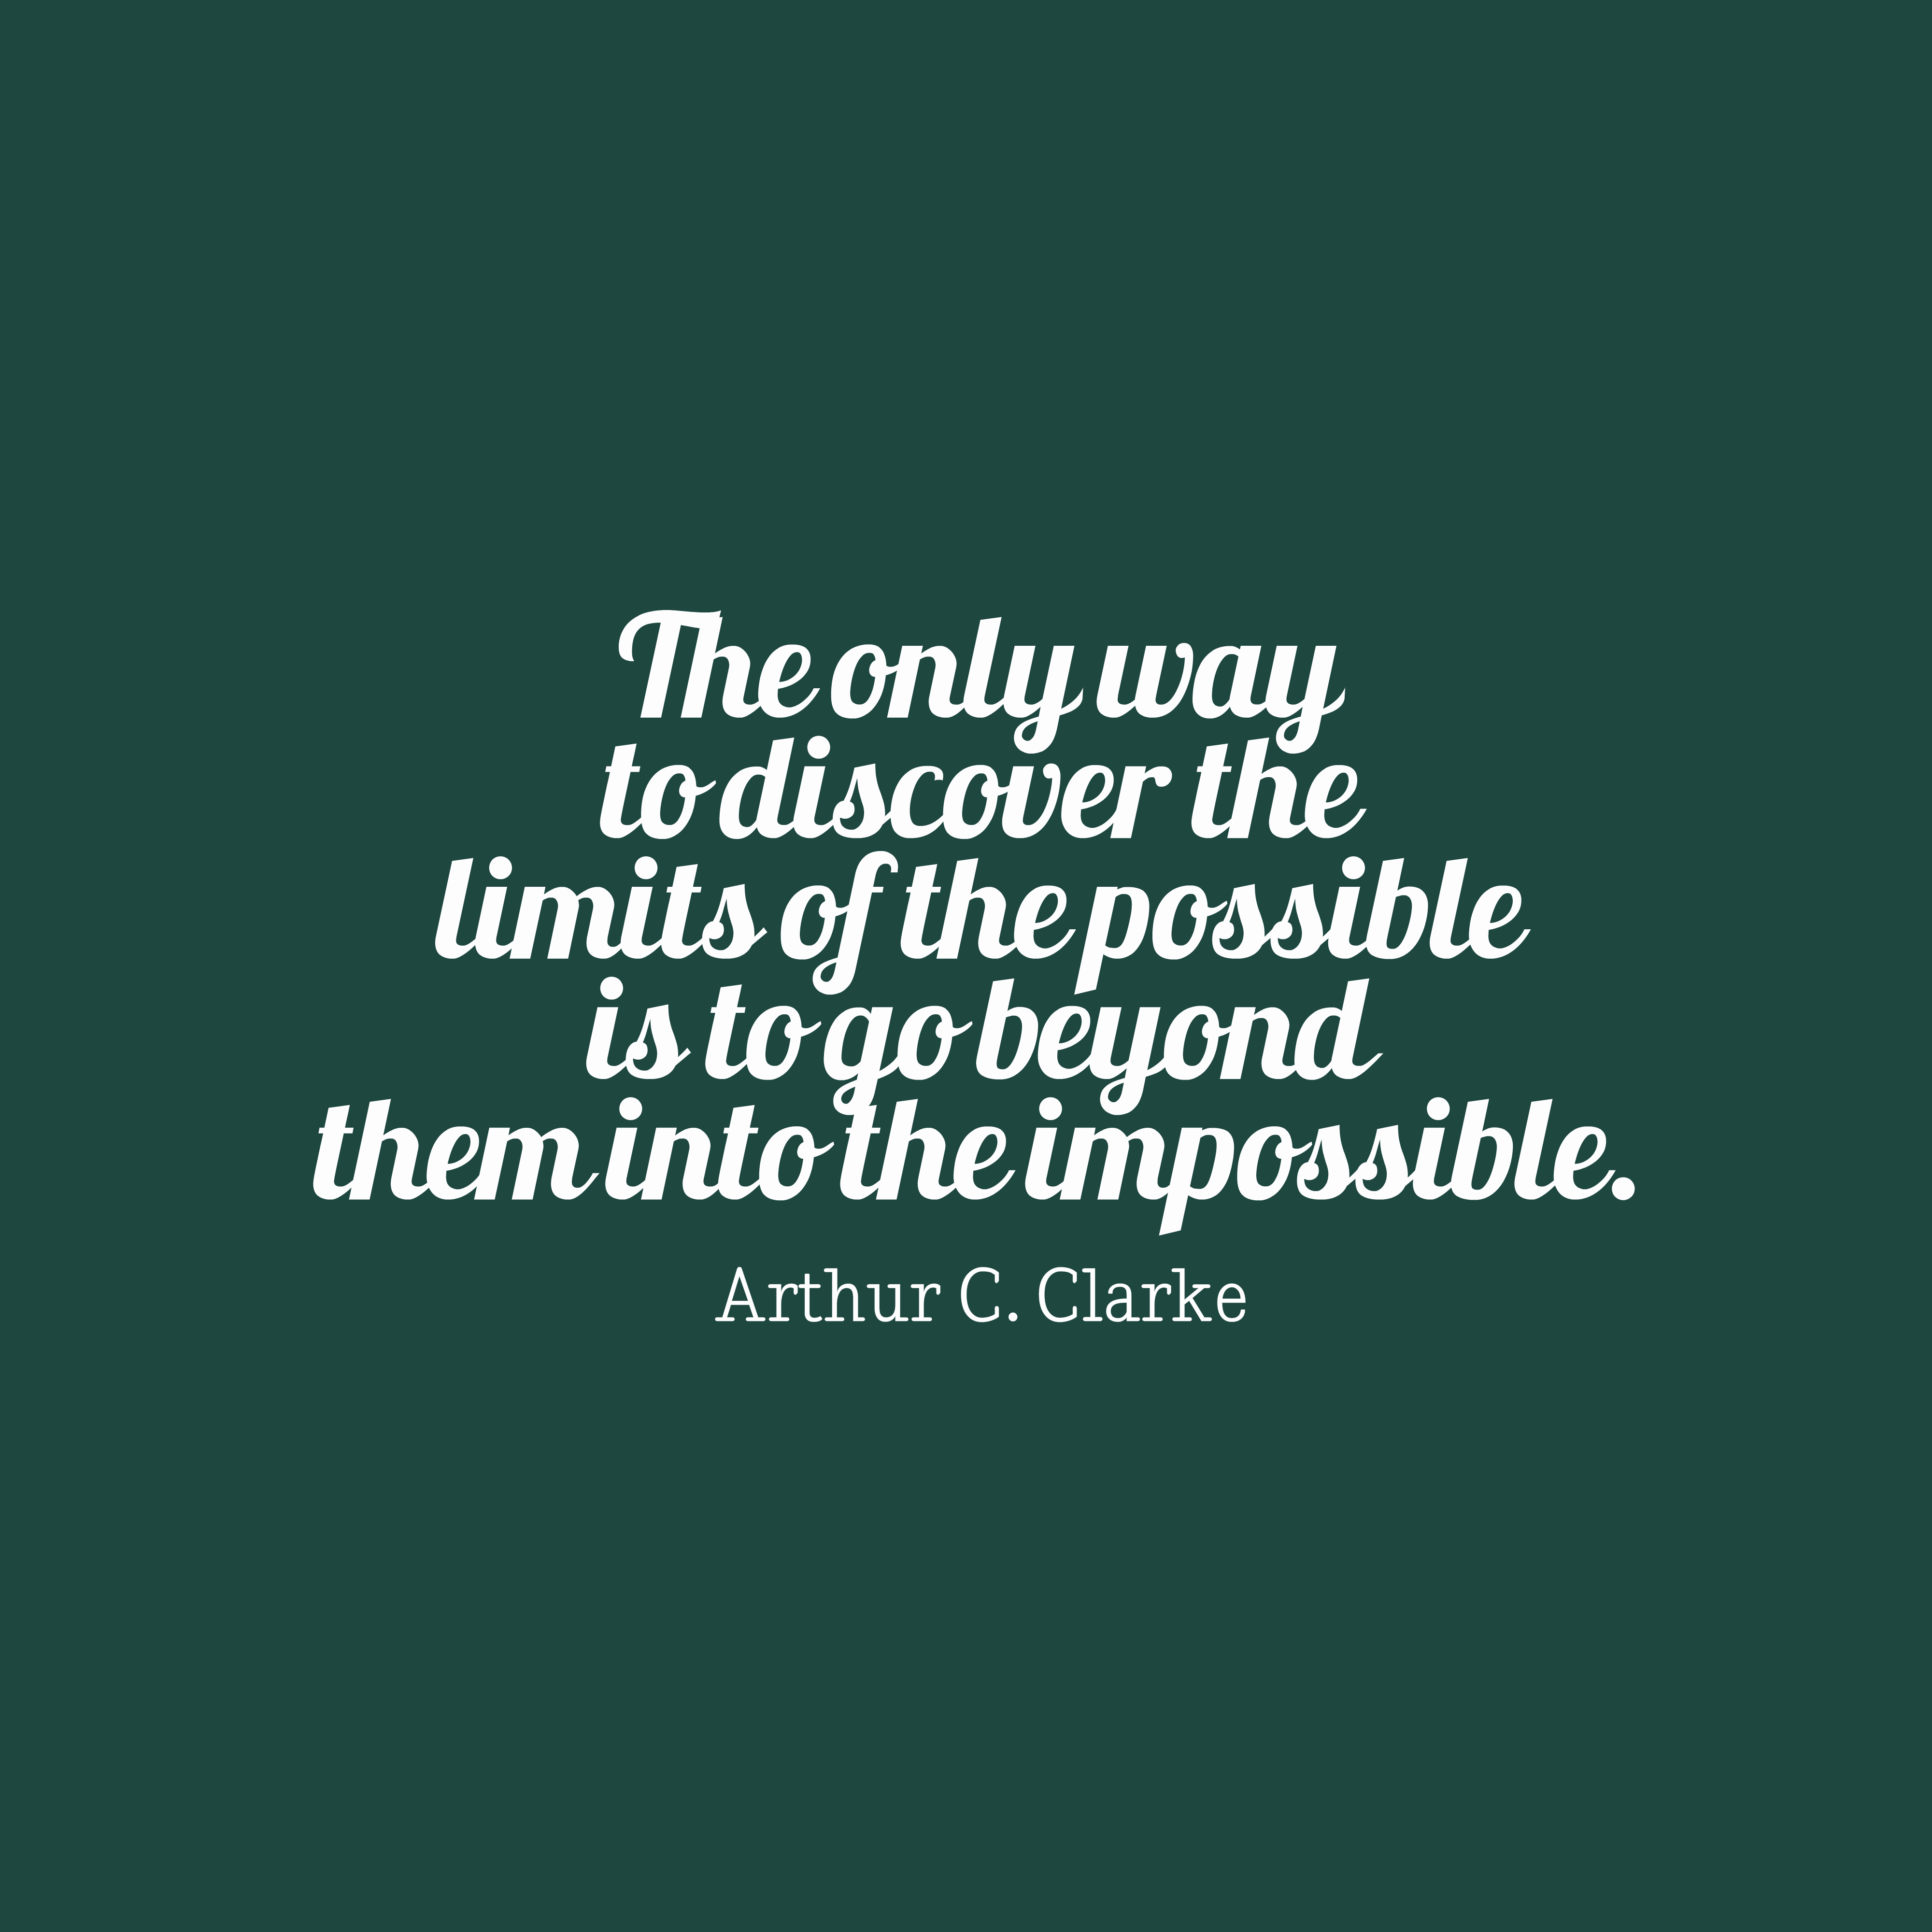 Quotes image of The only way to discover the limits of the possible is to go beyond them into the impossible.